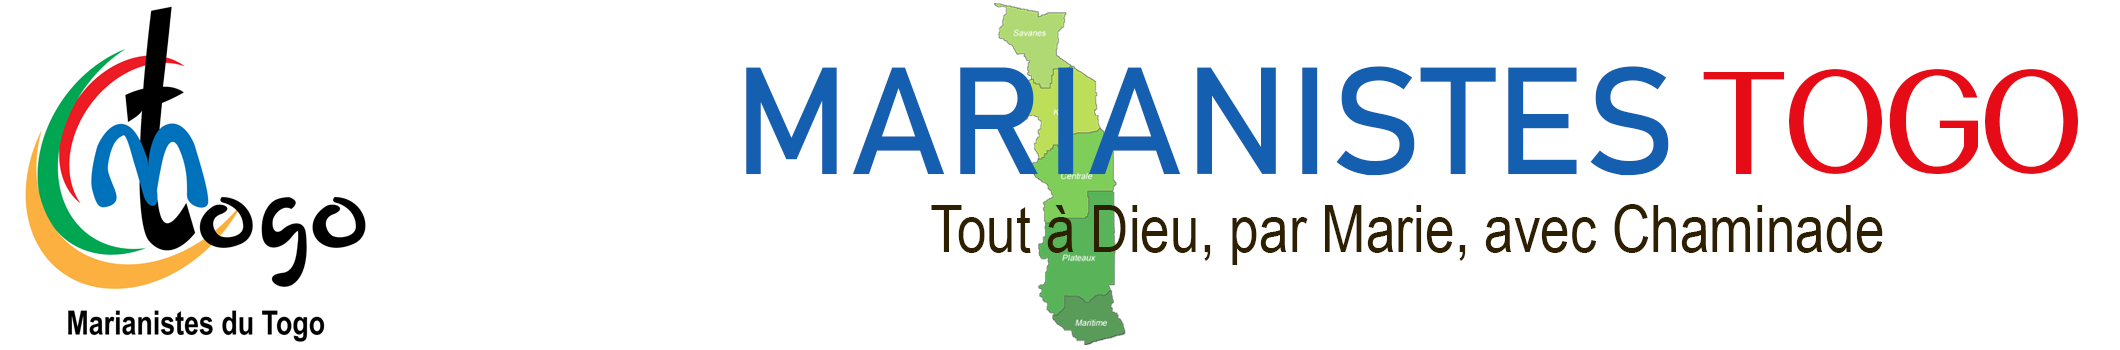 Marianists Togo